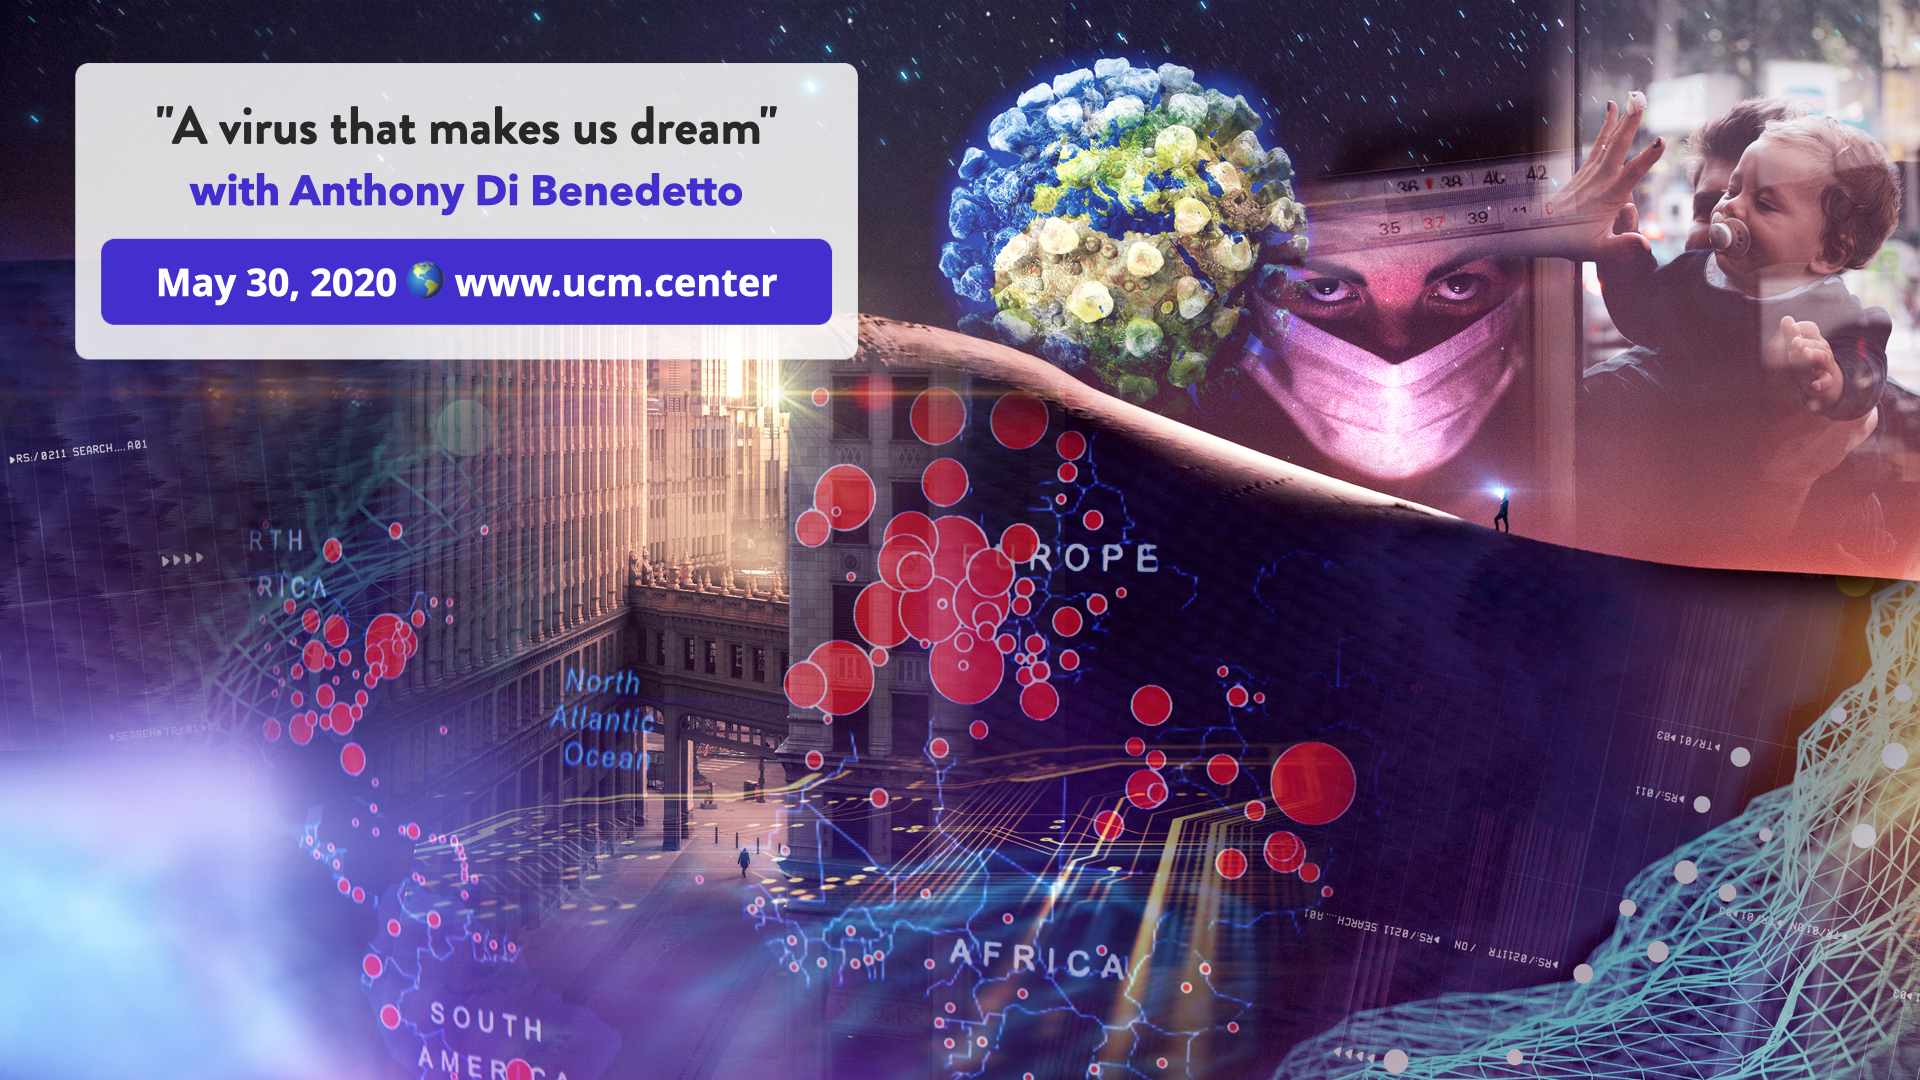 Banner web conference - A virus that makes us dream - Anthony Di Benedetto